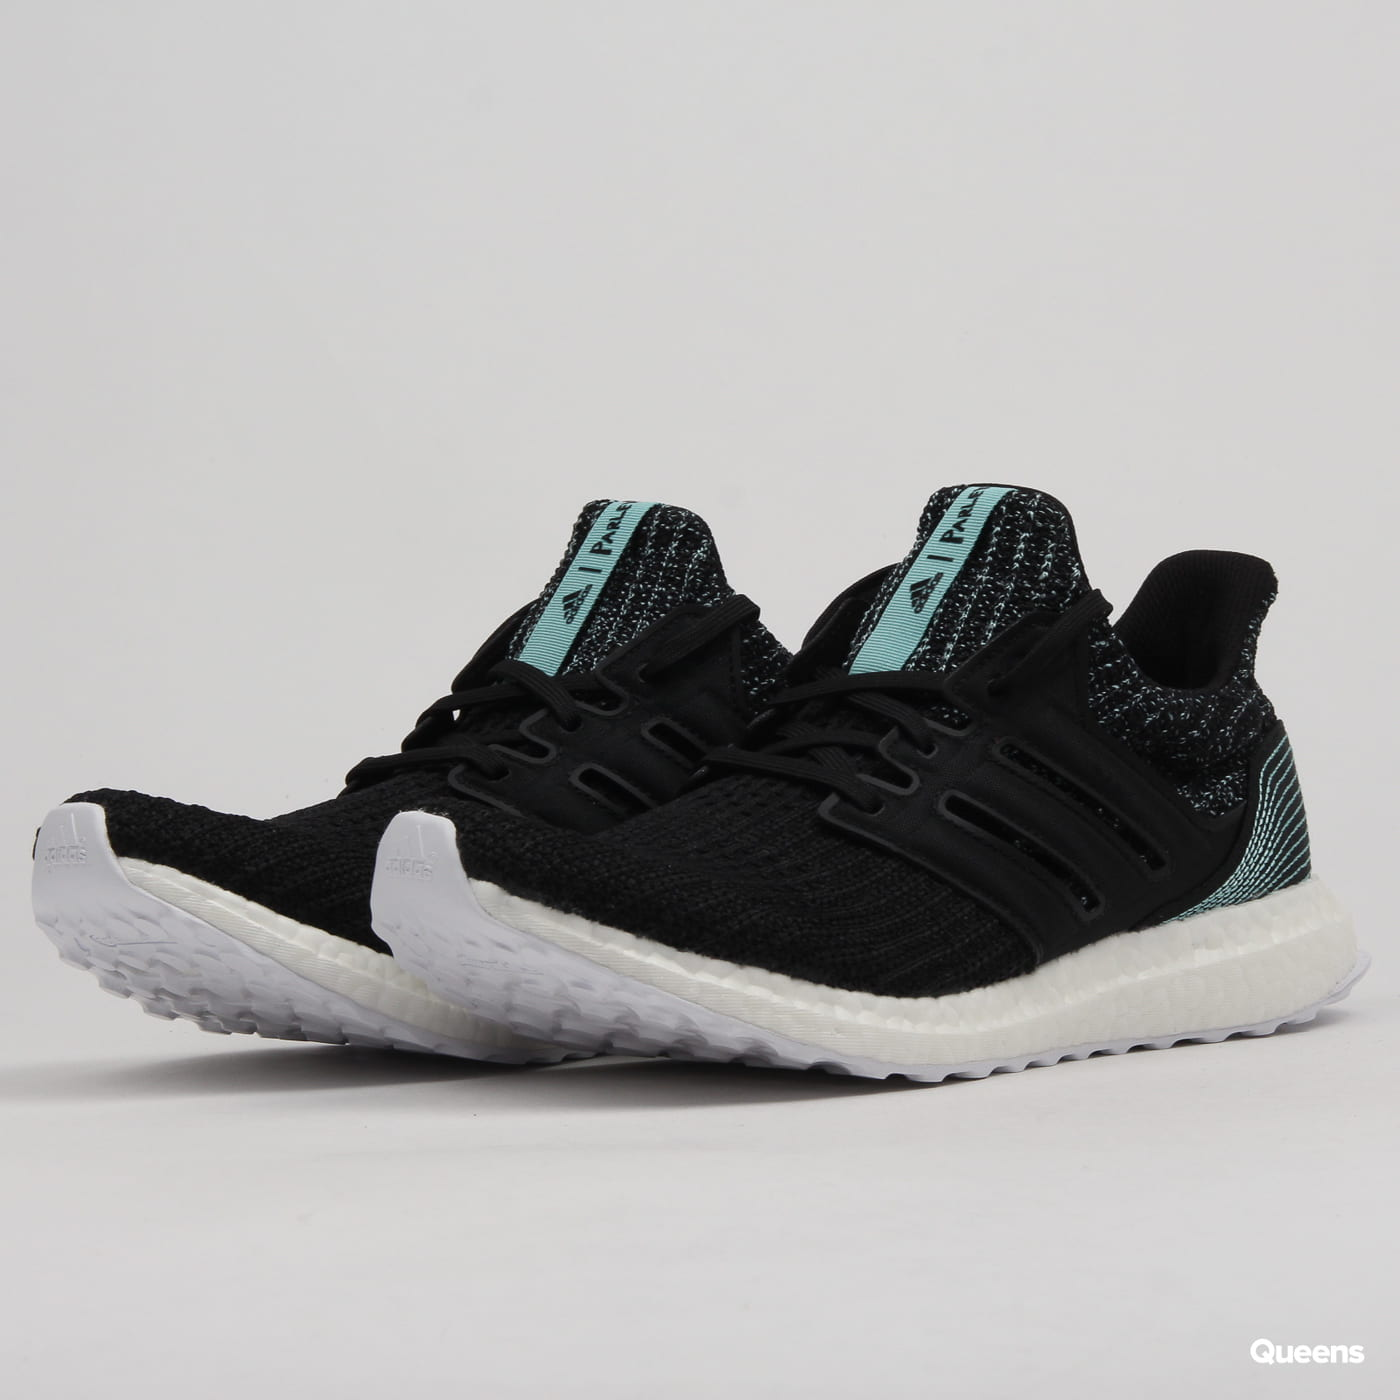 86a8c3a07f Boty adidas Performance UltraBOOST Parley (F36190) – Queens 💚